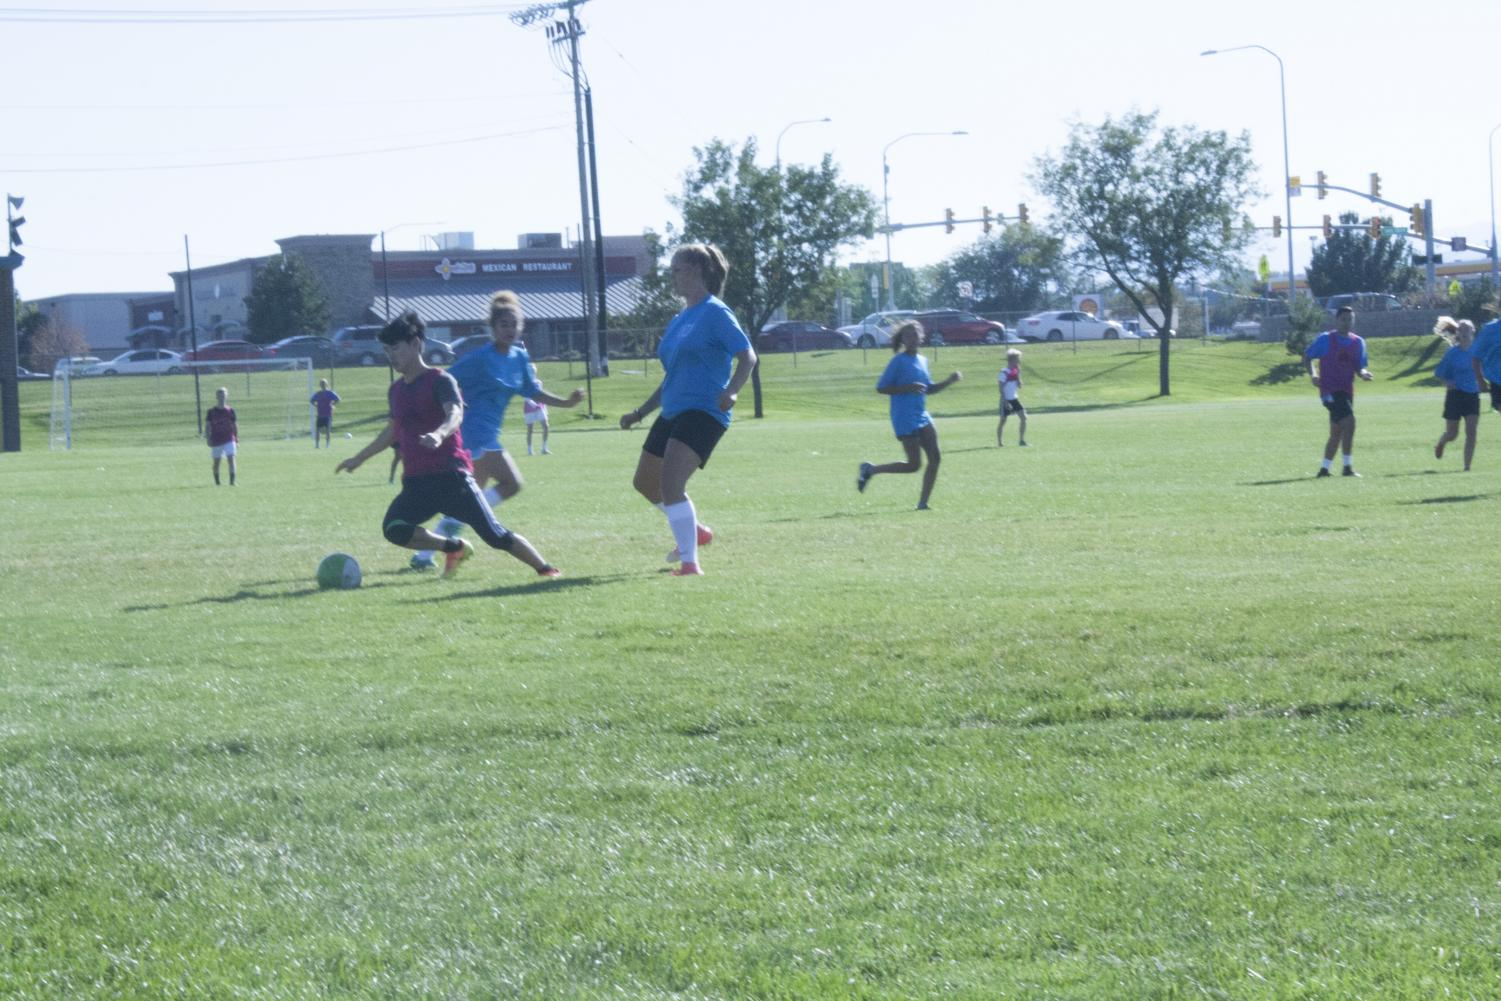 The Girls' Soccer Team practices at the school field for their upcoming games on September 27.